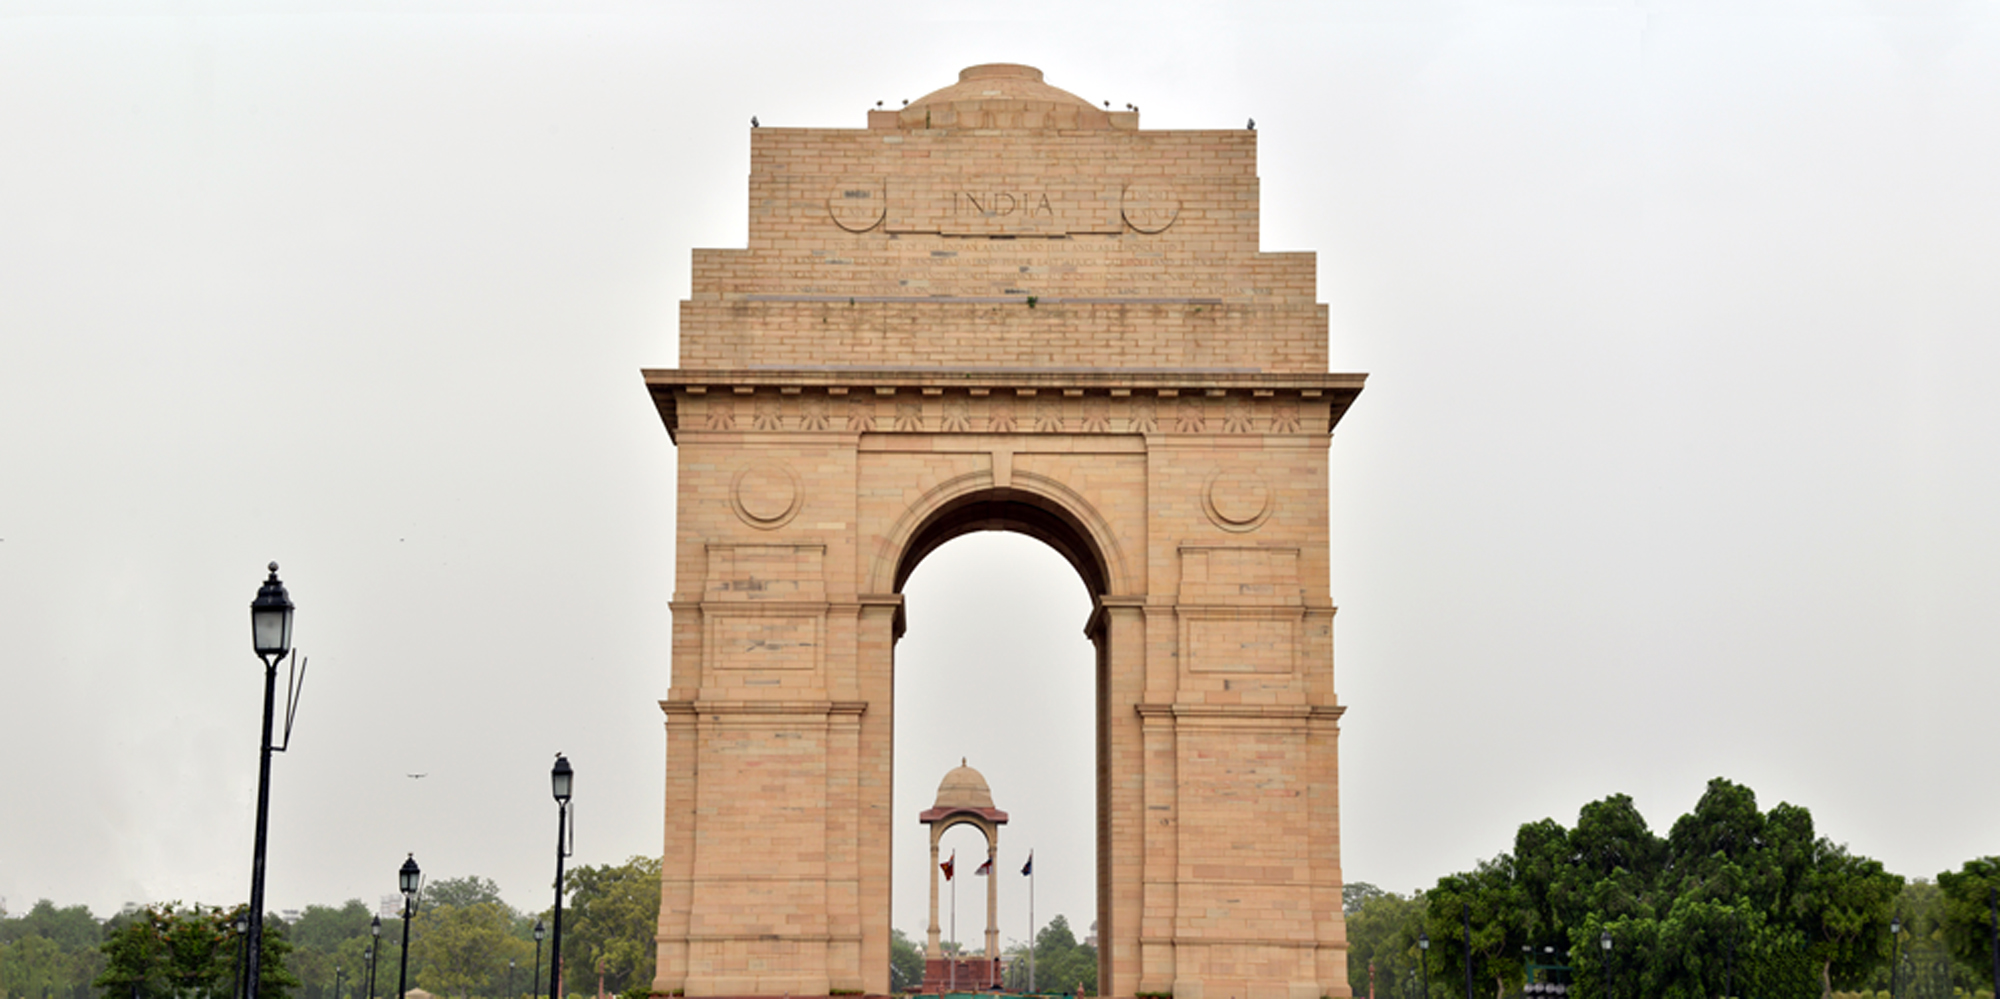 <strong>India Gate, Delhi, India</strong> - India Gate